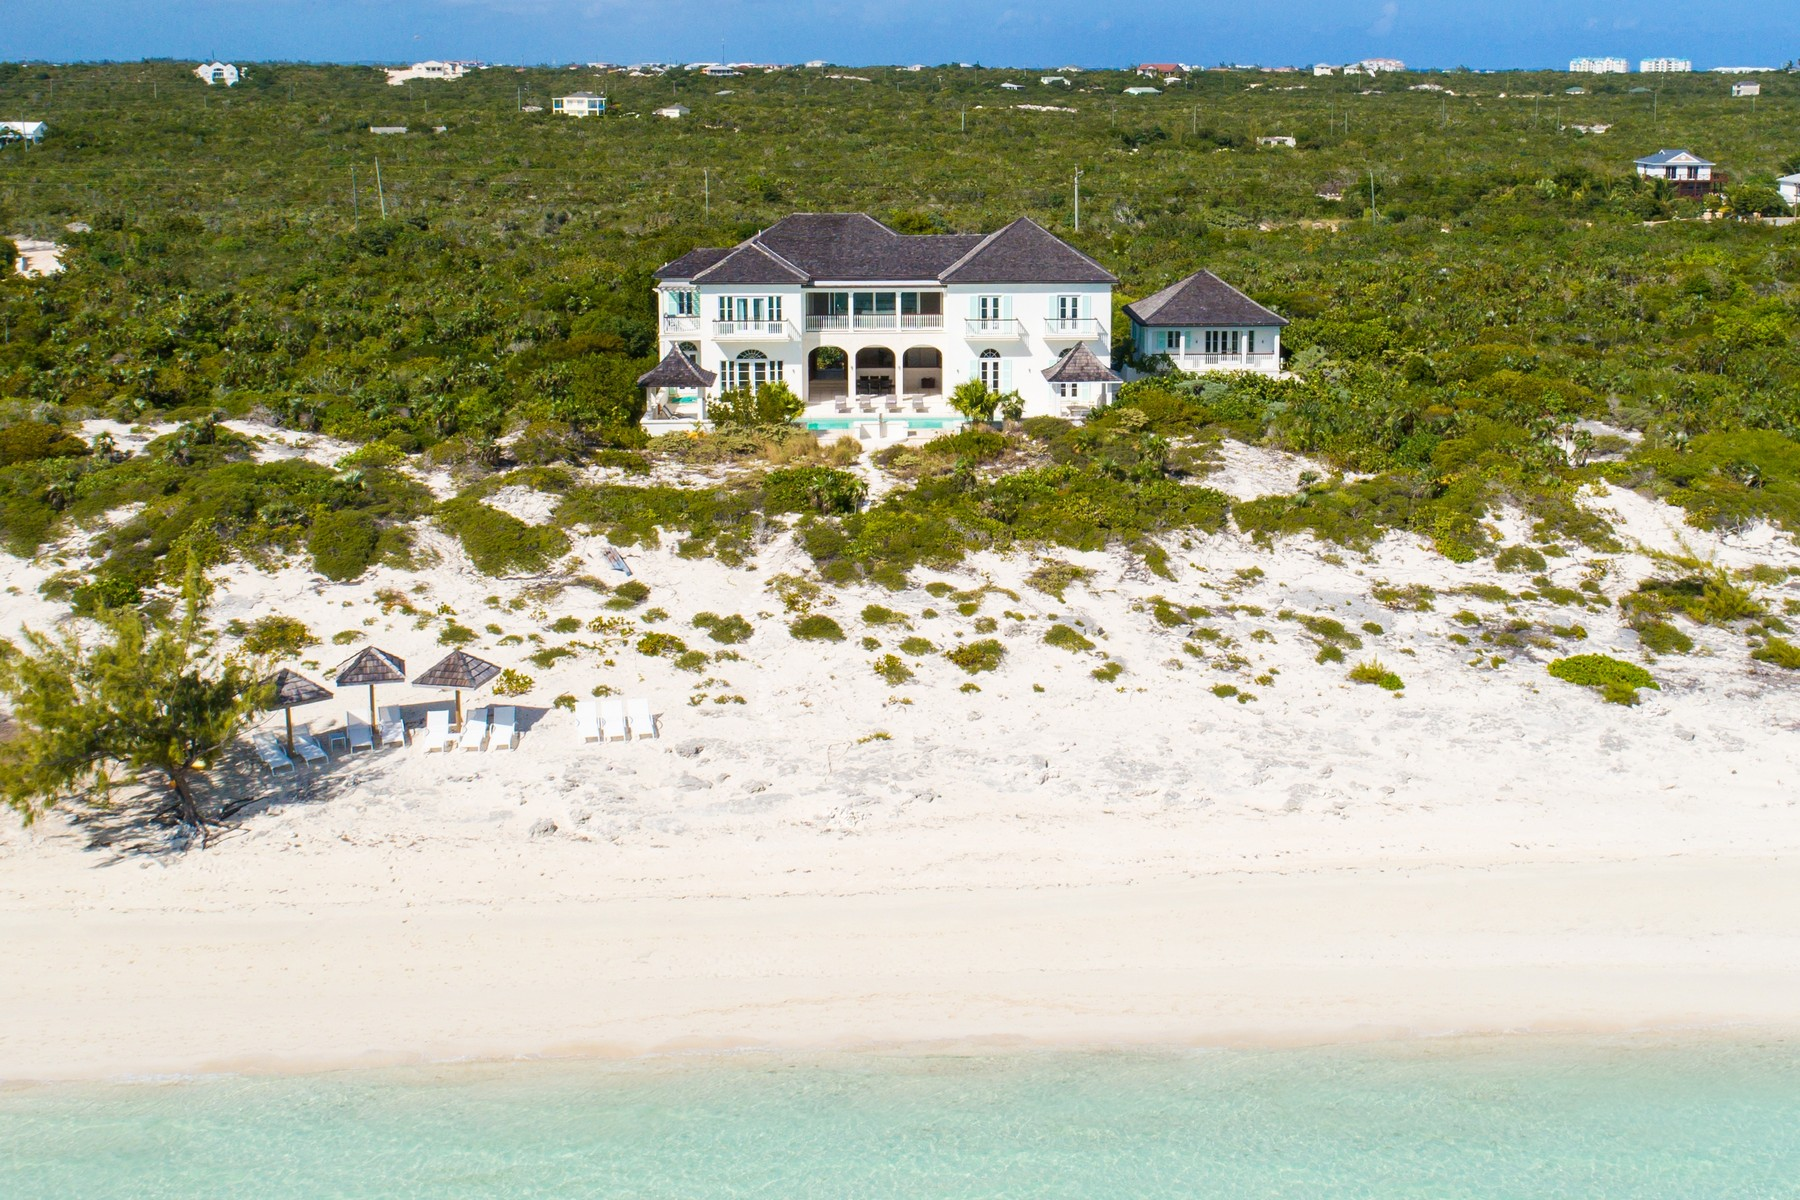 Single Family Home for Sale at Long Bay House Beachfront Long Bay, Providenciales TKCA 1ZZ Turks And Caicos Islands